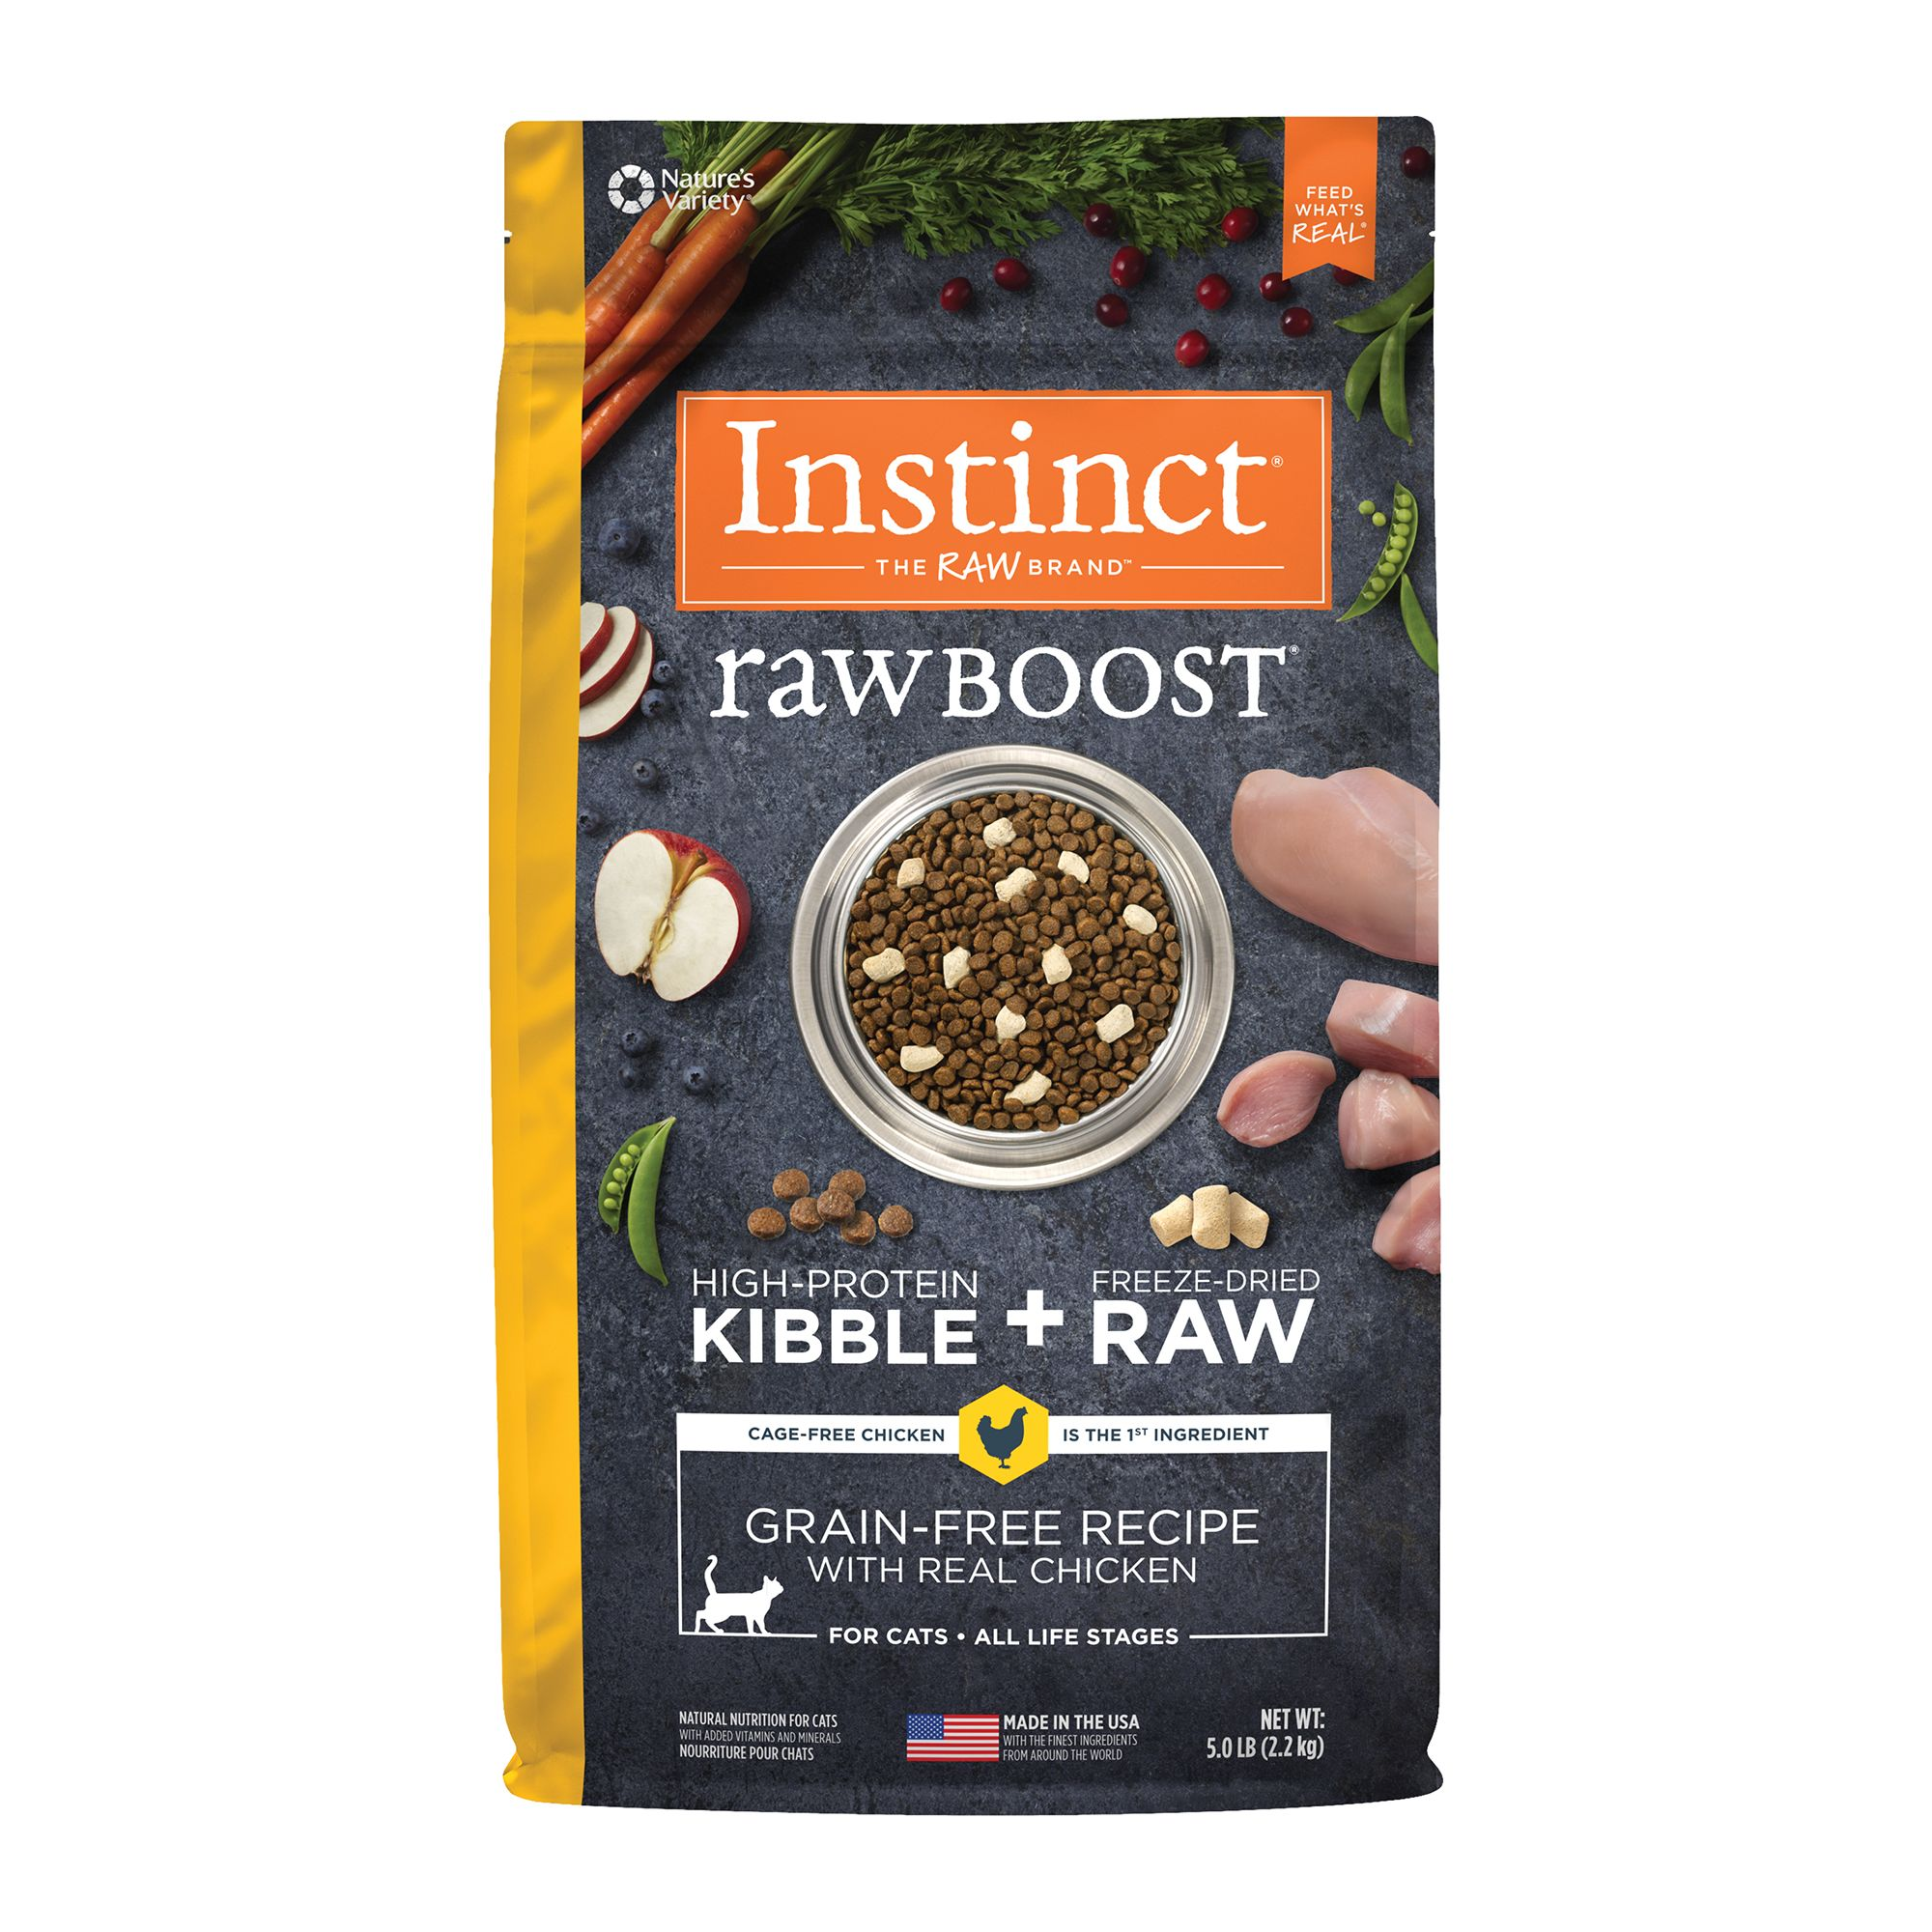 Nature's Variety Instinct Raw Boost Cat Food - Natural, Grain Free, Freeze Dried Raw, Chicken